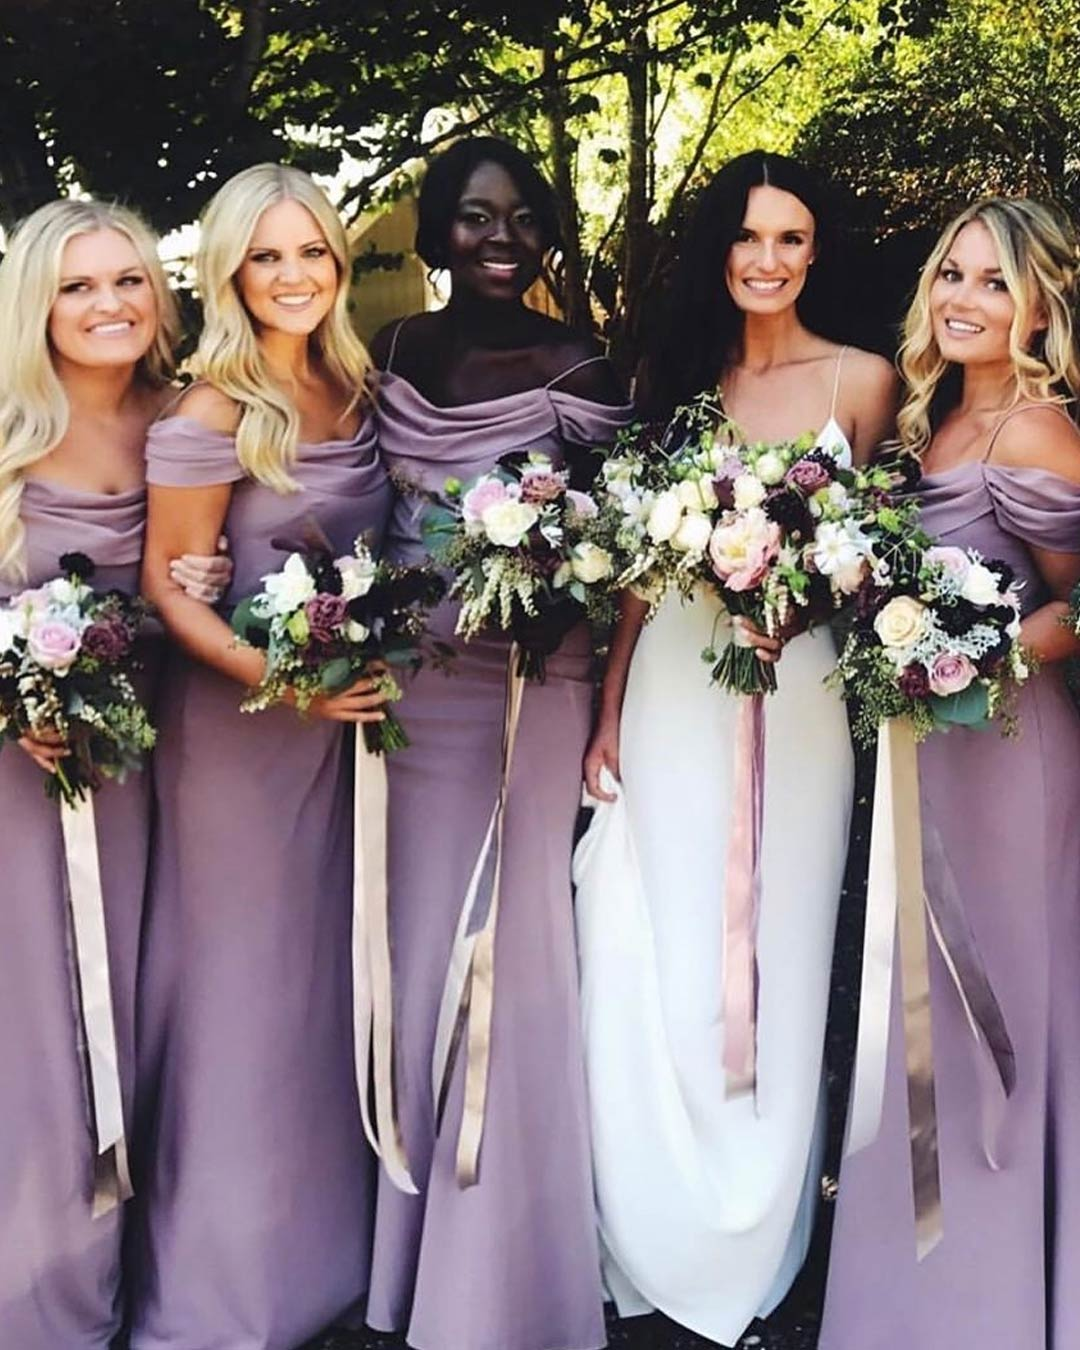 lilac wedding colors bridesmaids dresses attire bouquets